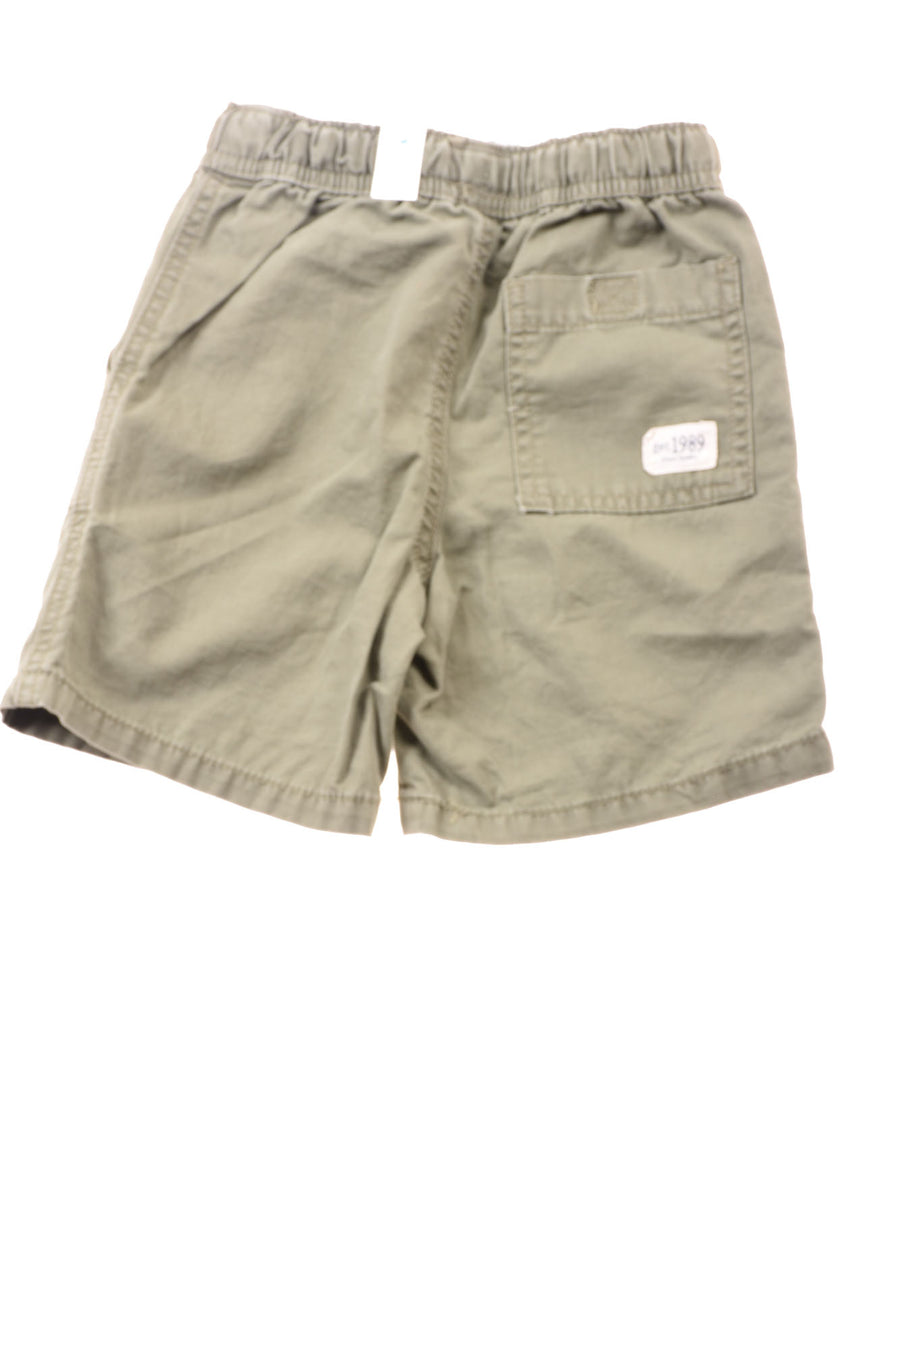 NEW The Children's Place Toddler Boy's Shorts 3T Green